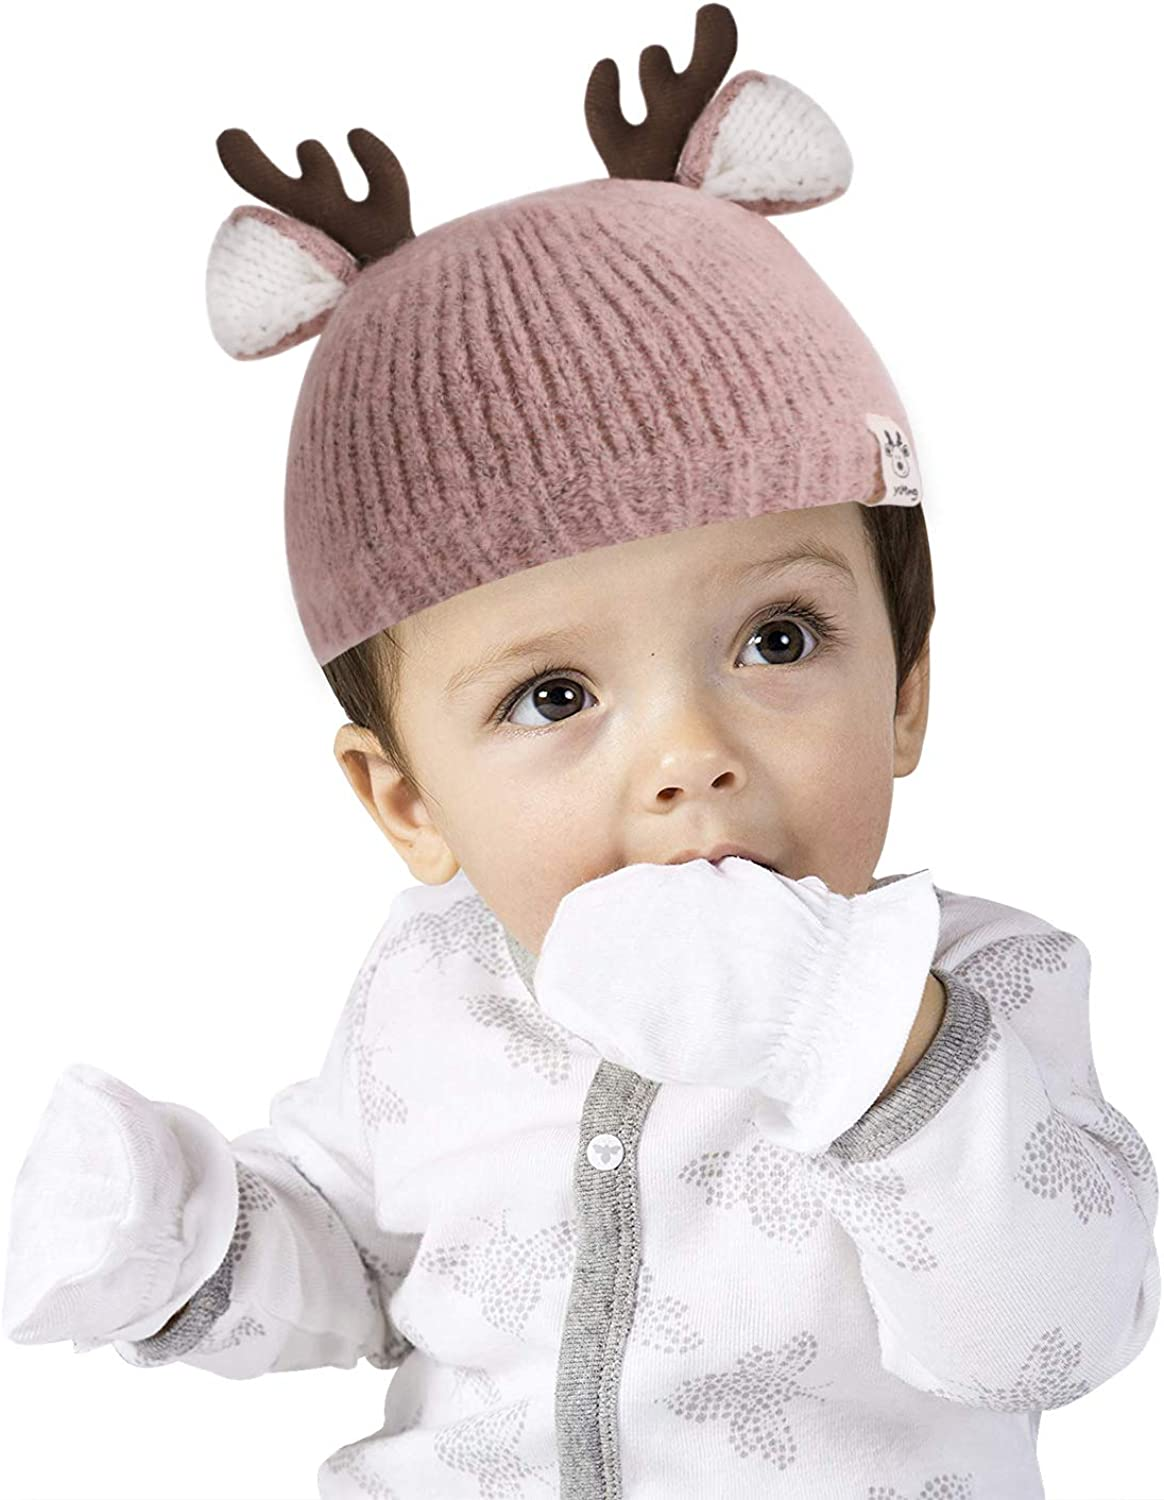 Baby Winter Knitted Hat Cute Deer Beanie Hat Adorable Antler Baby Cap Newborn Baby Photography Prop Cotton Lined Hat Kids Christmas Party Favors for 3-24 Months Baby 40-50cm